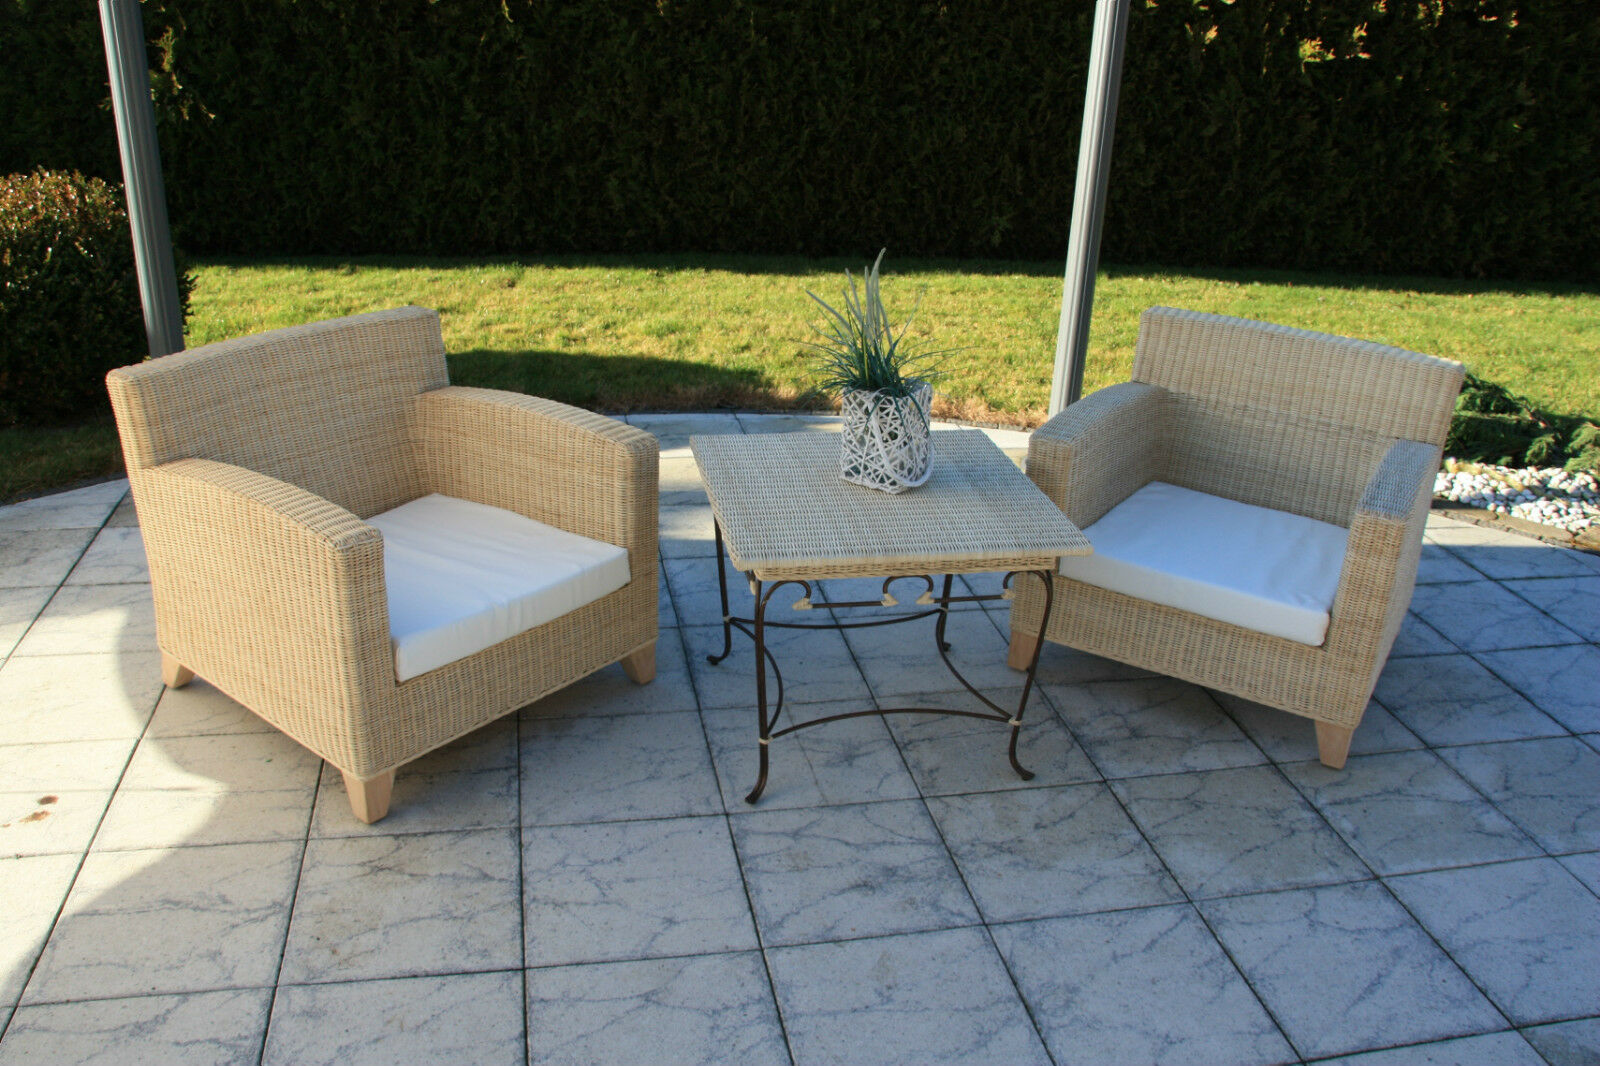 echt rattan sitzgruppe tisch mit 2 sessel eur 329 00 picclick de. Black Bedroom Furniture Sets. Home Design Ideas